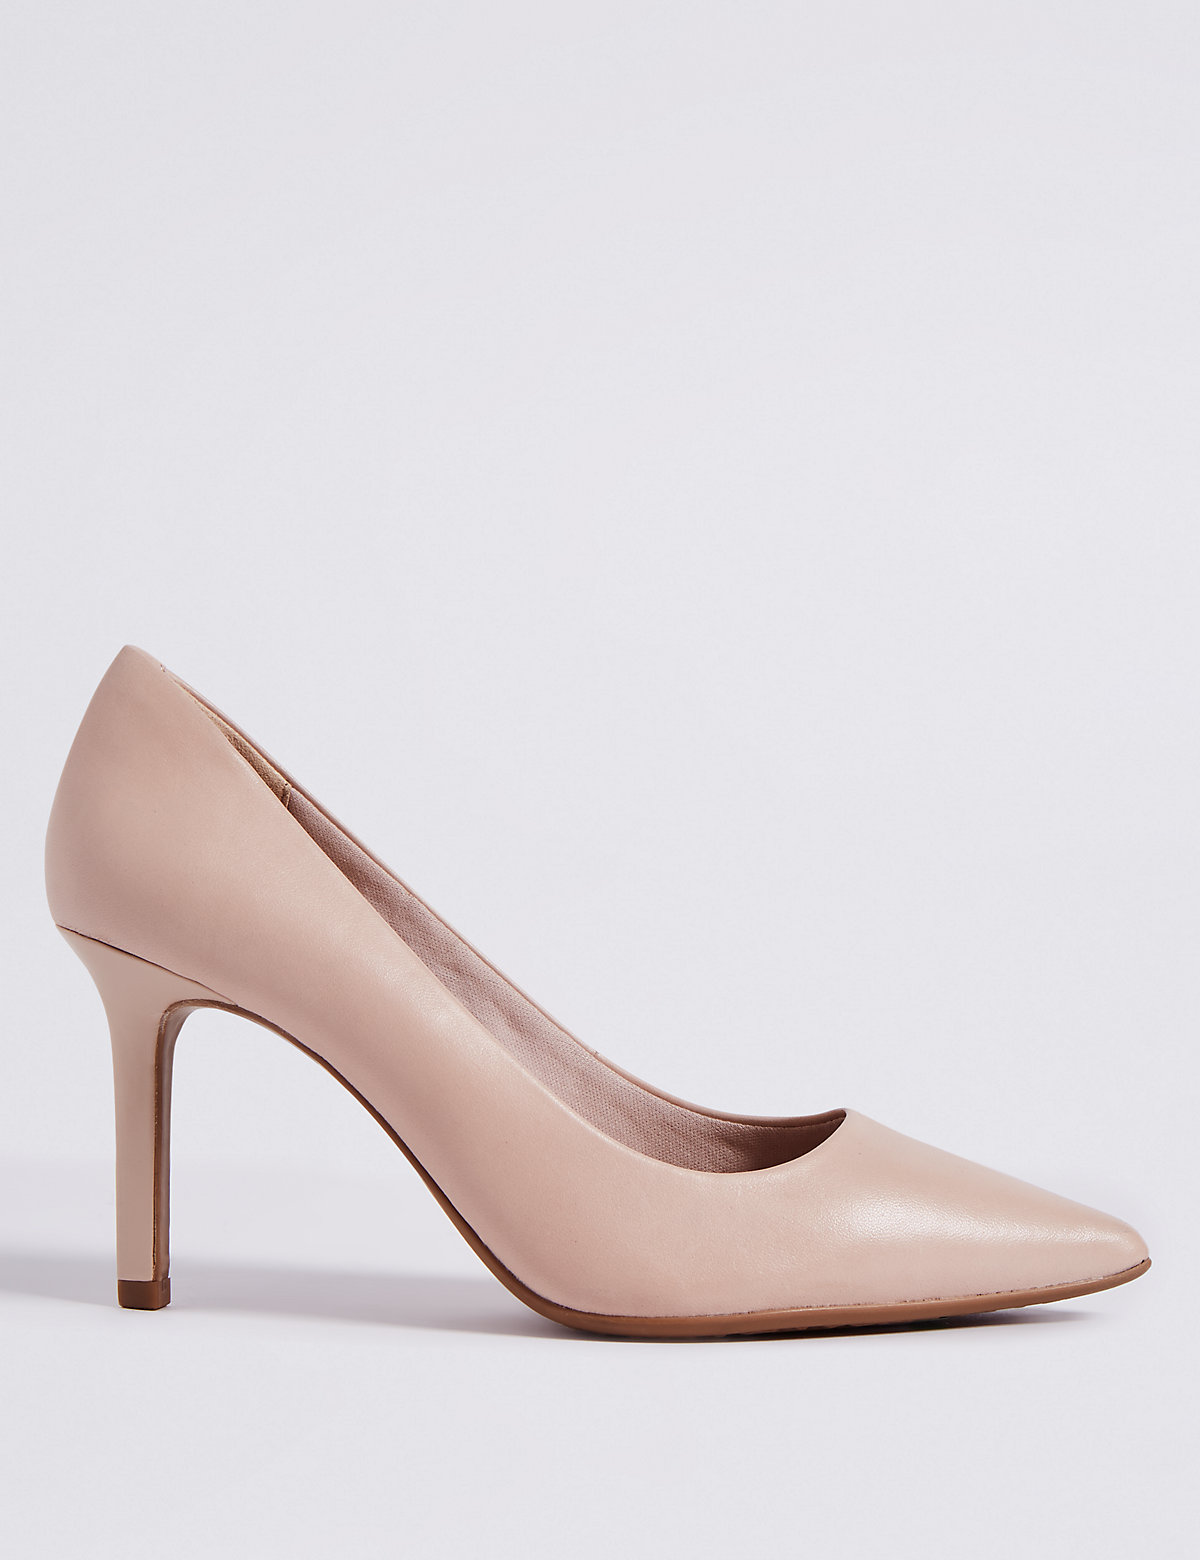 Womens Occasion & Party Shoes | M&S